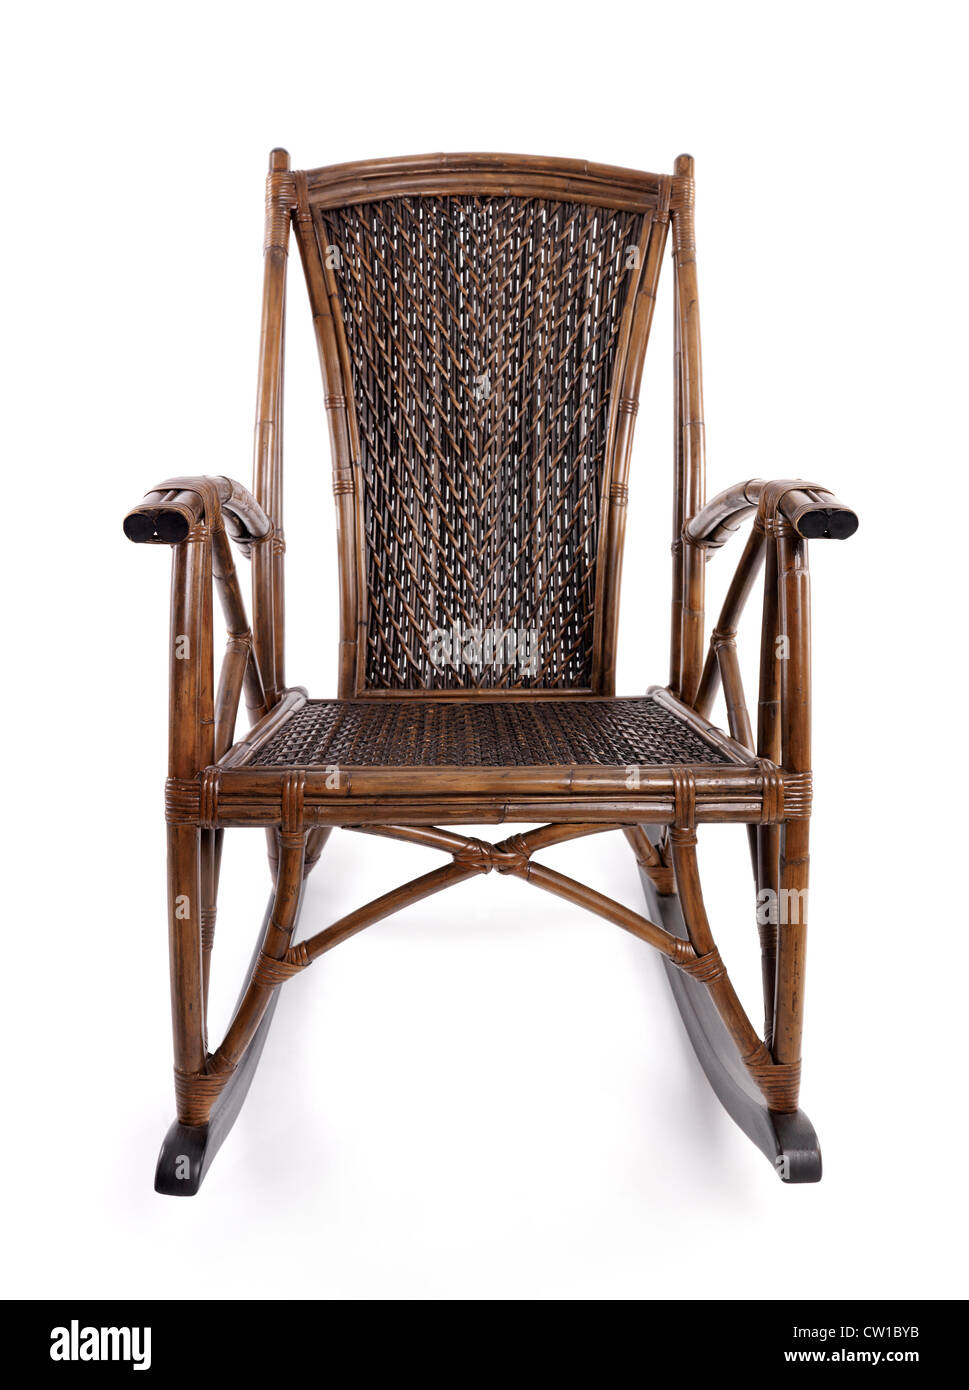 Antique bamboo wicker rocking chair isolated on white background - Stock Image